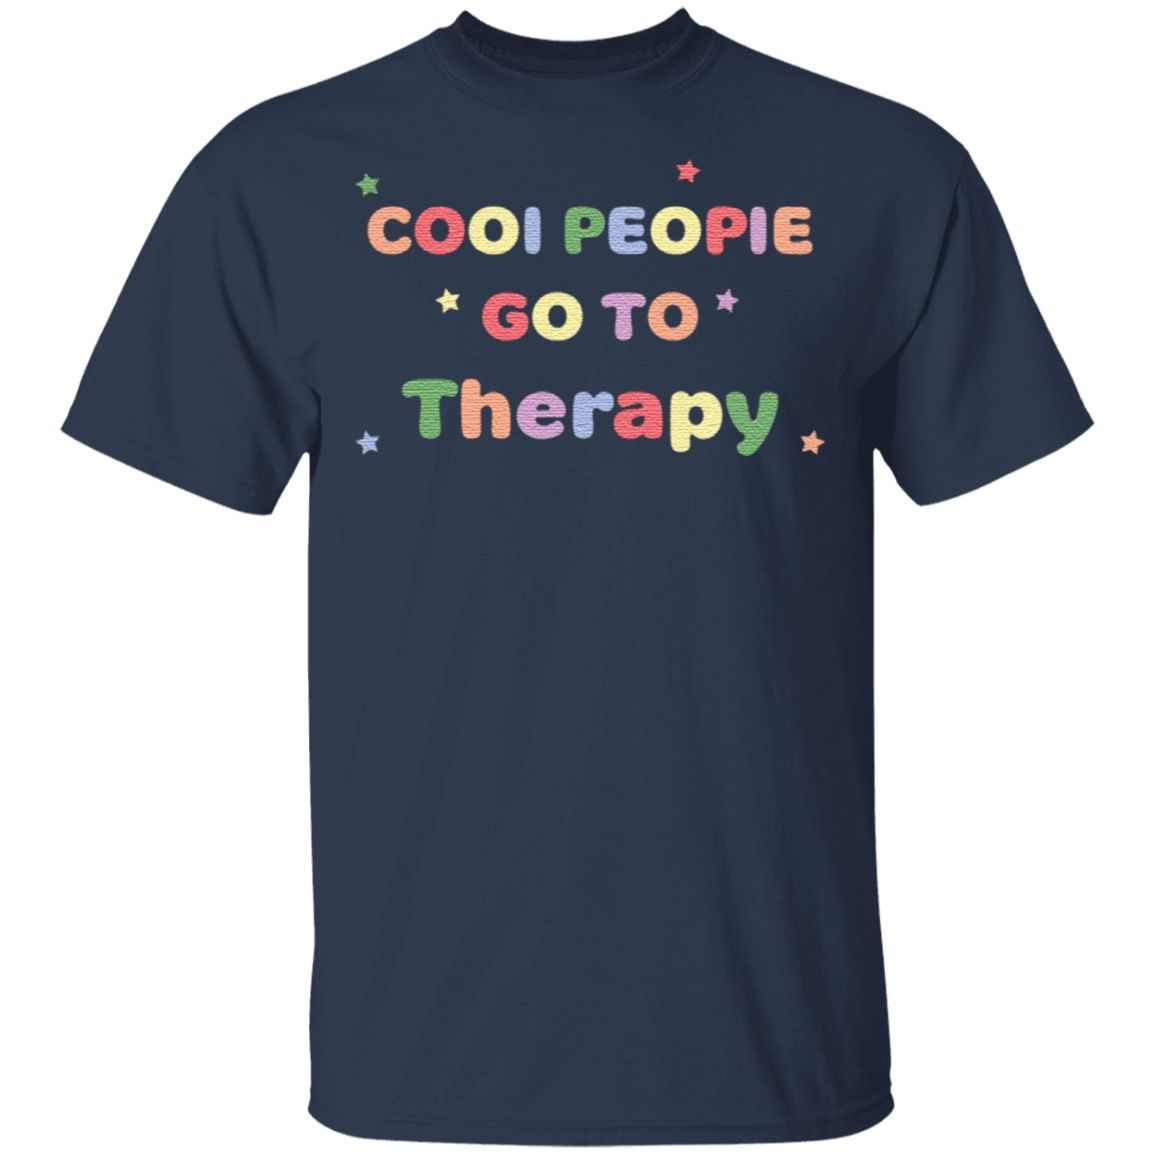 Cool People Go To Therapy t shirt